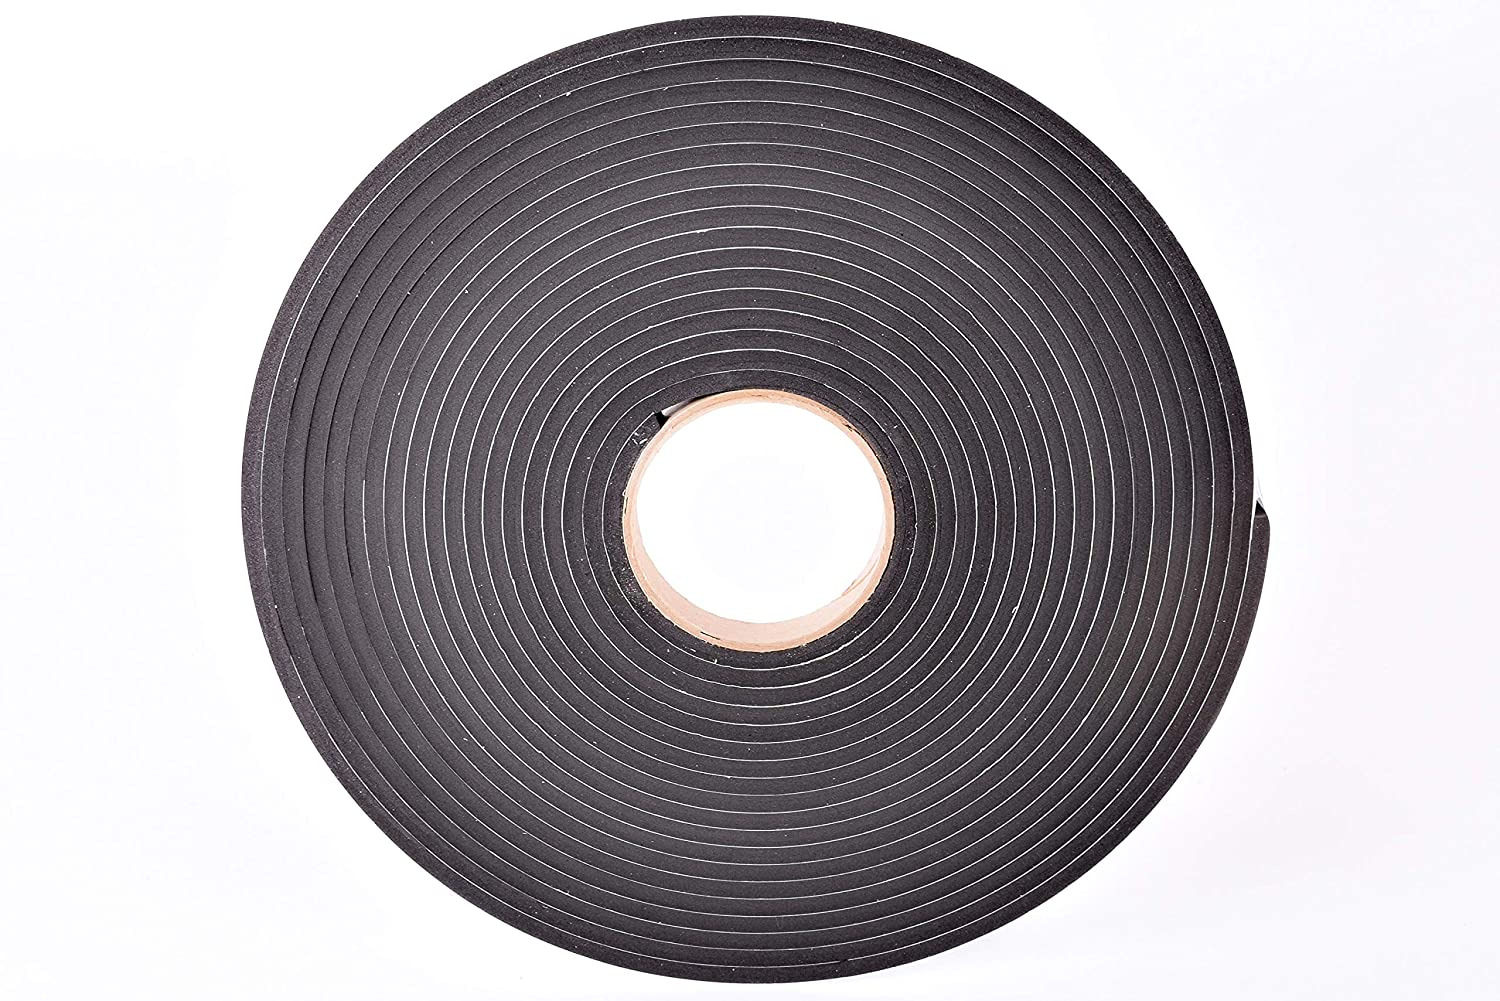 Sponge Sale special price Neoprene Stripping W Adhesive 3 Thick SEAL limited product X 1 Wide 4in